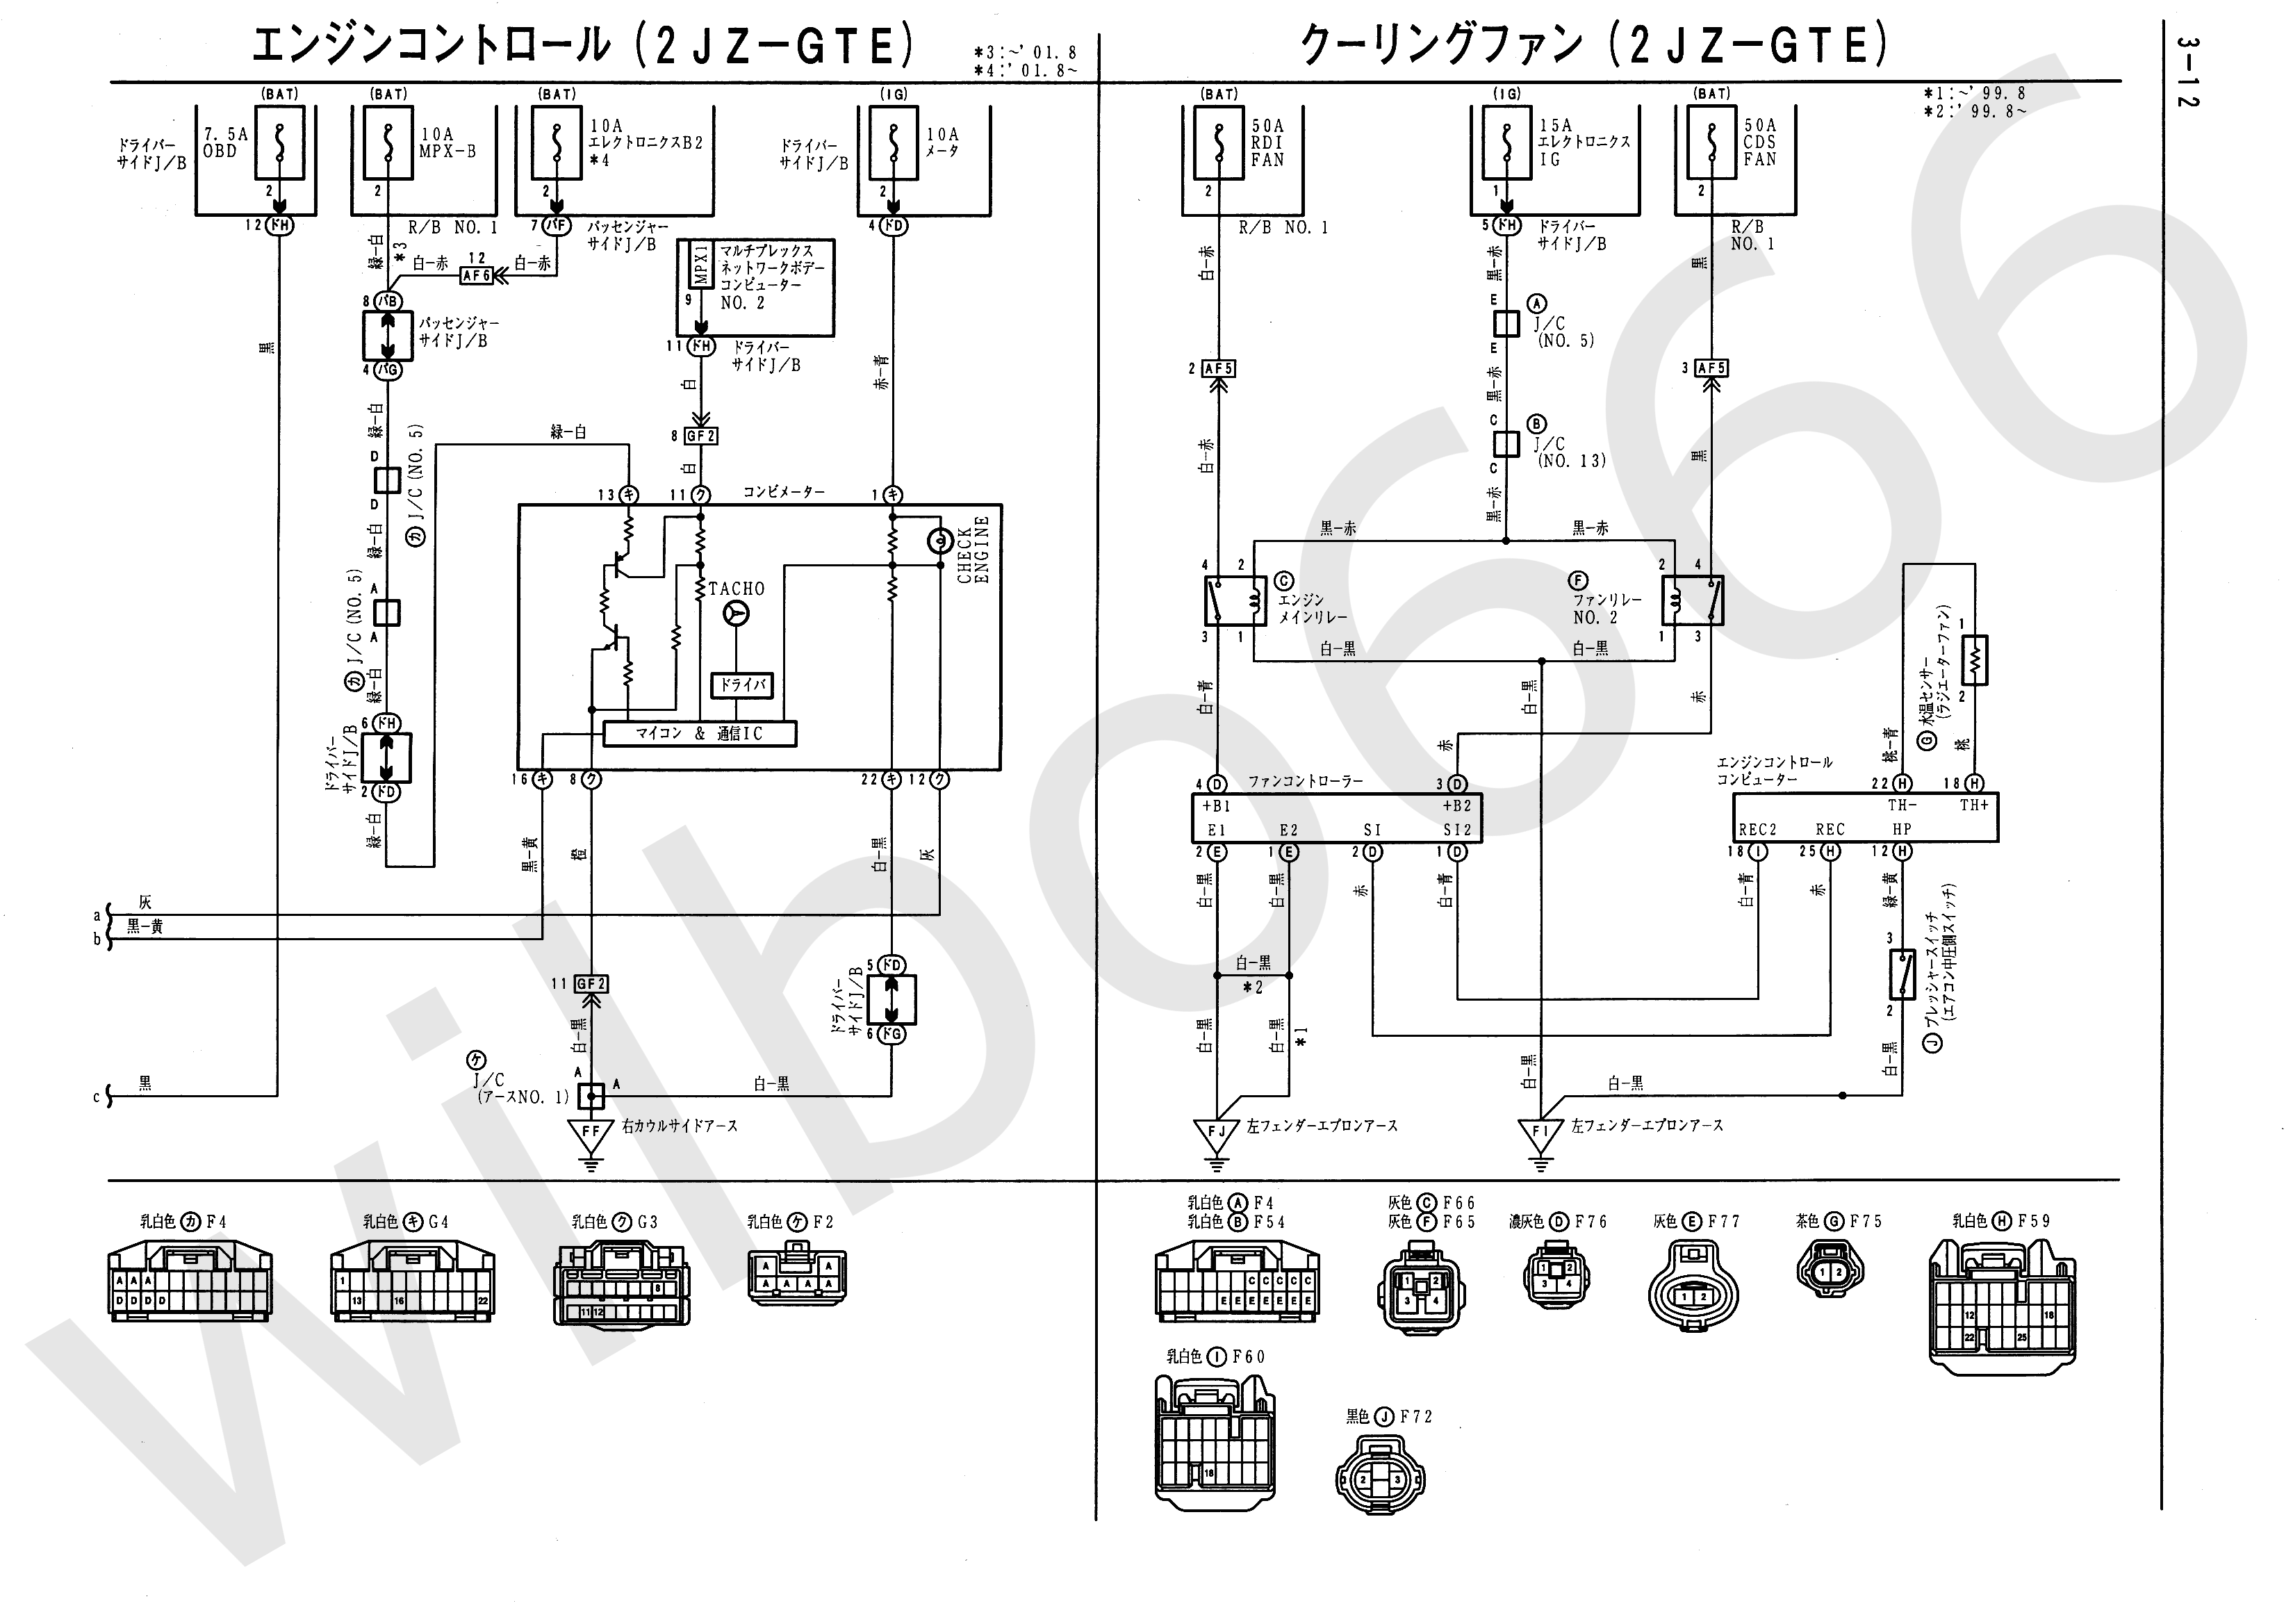 JZS161 Electrical Wiring Diagram 6748505 3 12 wilbo666 2jz gte vvti jzs161 aristo engine wiring is300 2jzgte wiring harness at bakdesigns.co